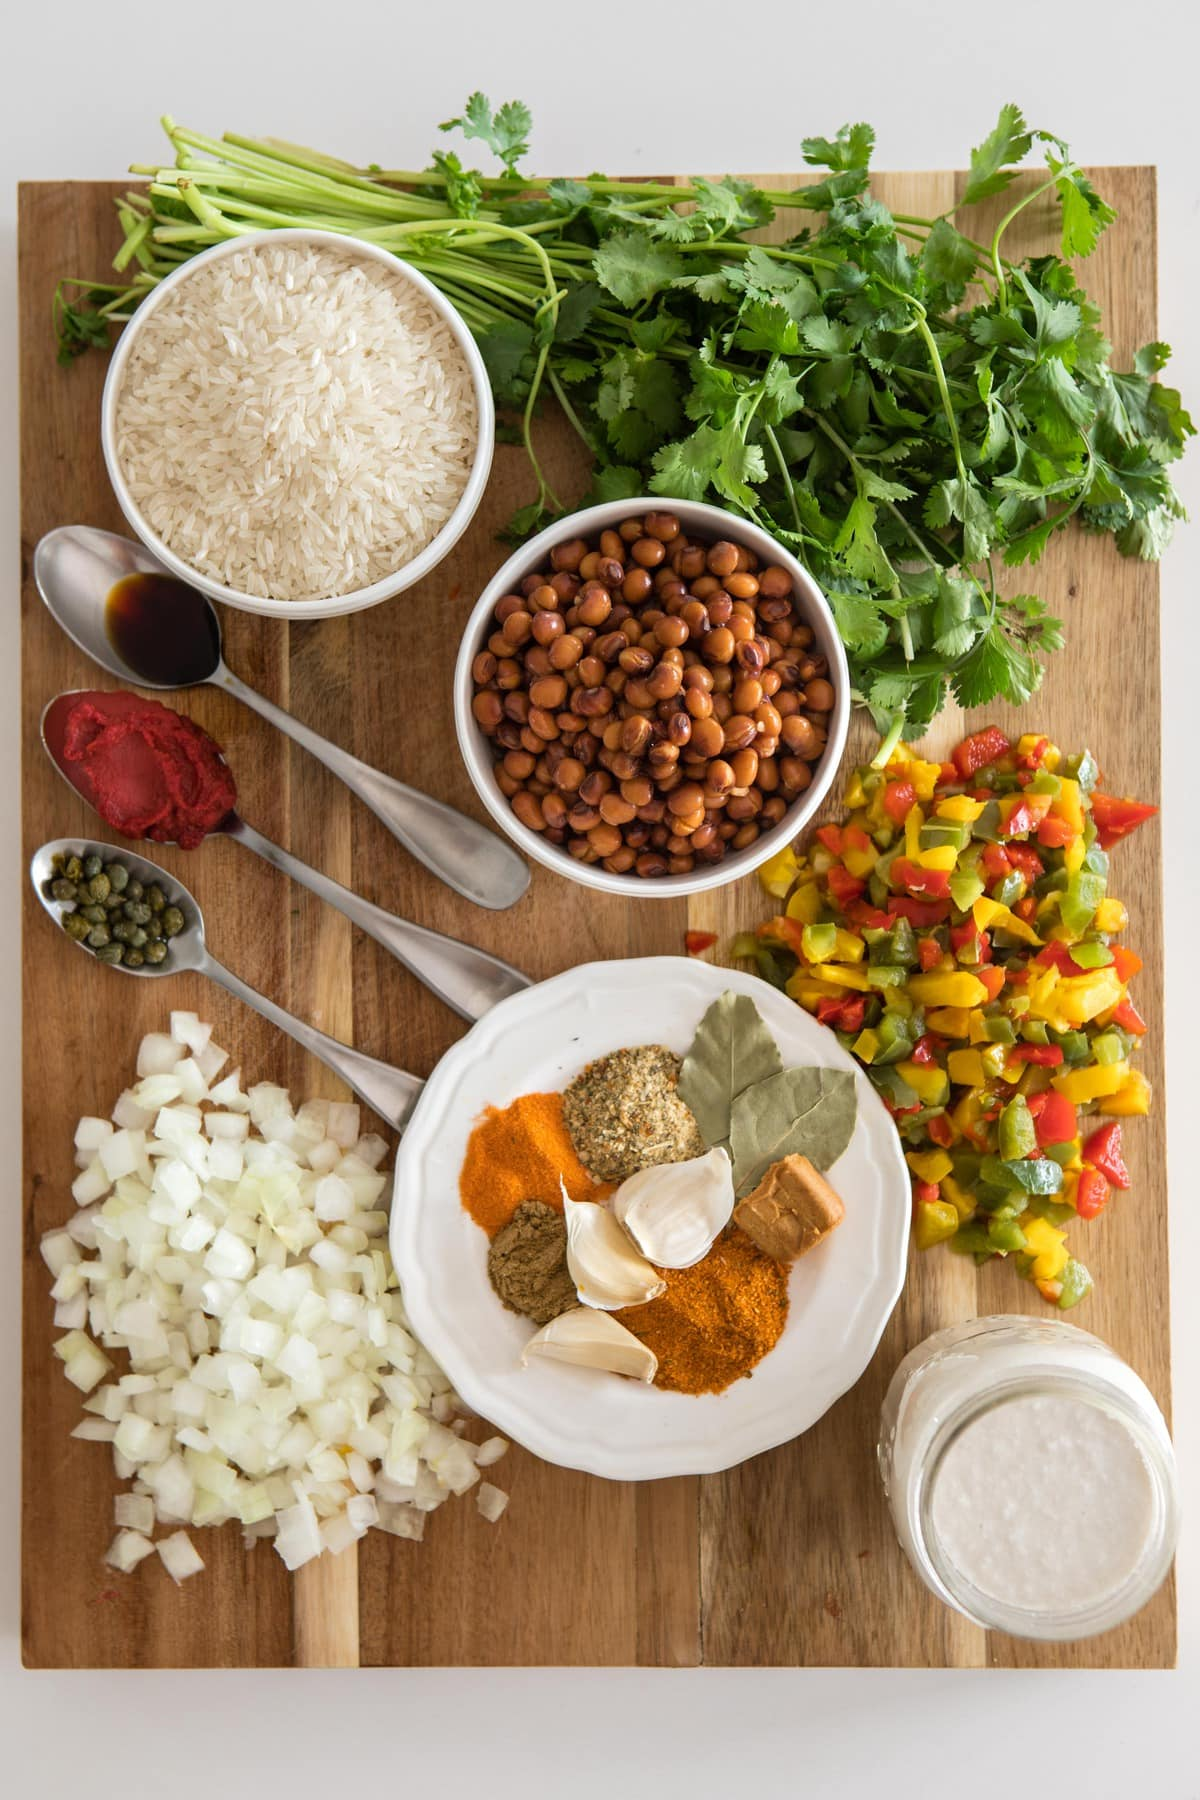 ingredients for arroz con guandules on wooden cutting board